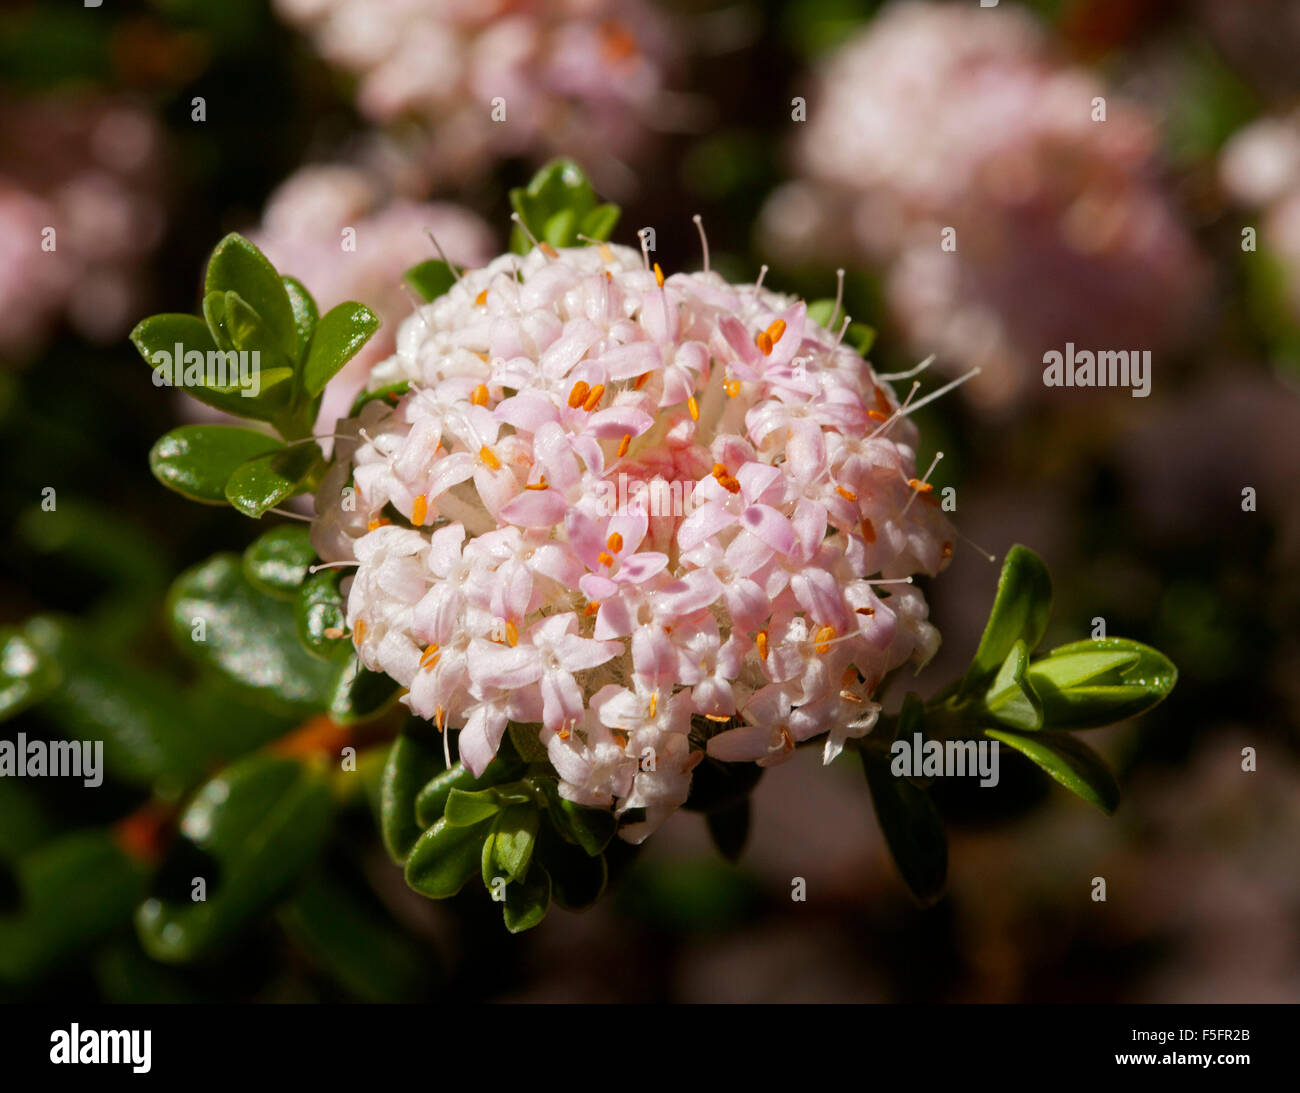 Pink Flowers Australian Native Stock Photos   Pink Flowers     Cluster of small pale pink flowers of Australian native shrub Pimelea  ferruginea surrounded by dark green